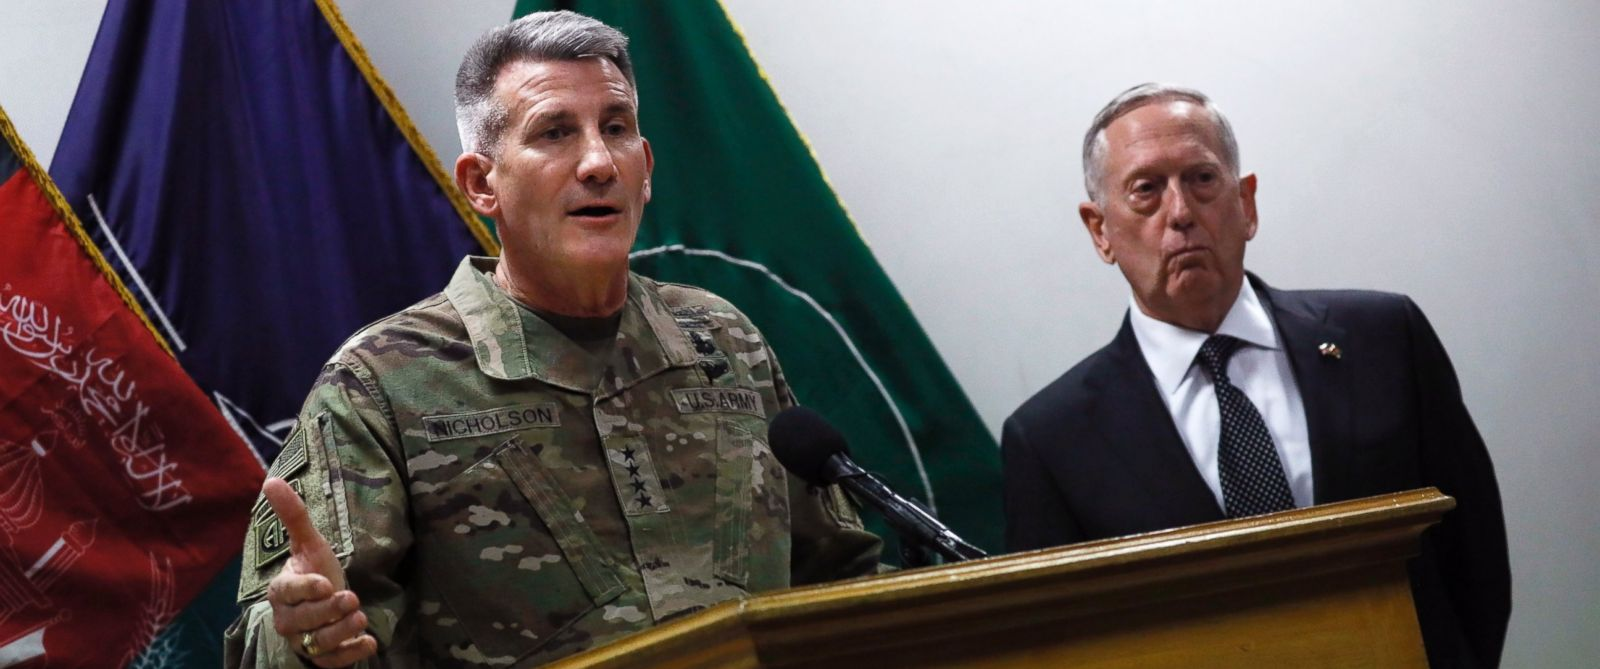 PHOTO: Defense Secretary James Mattis, right, and U.S. Army General John Nicholson, left, commander of U.S. Forces Afghanistan, hold a news conference at Resolute Support headquarters in Kabul, Afghanistan, April 24, 2017.